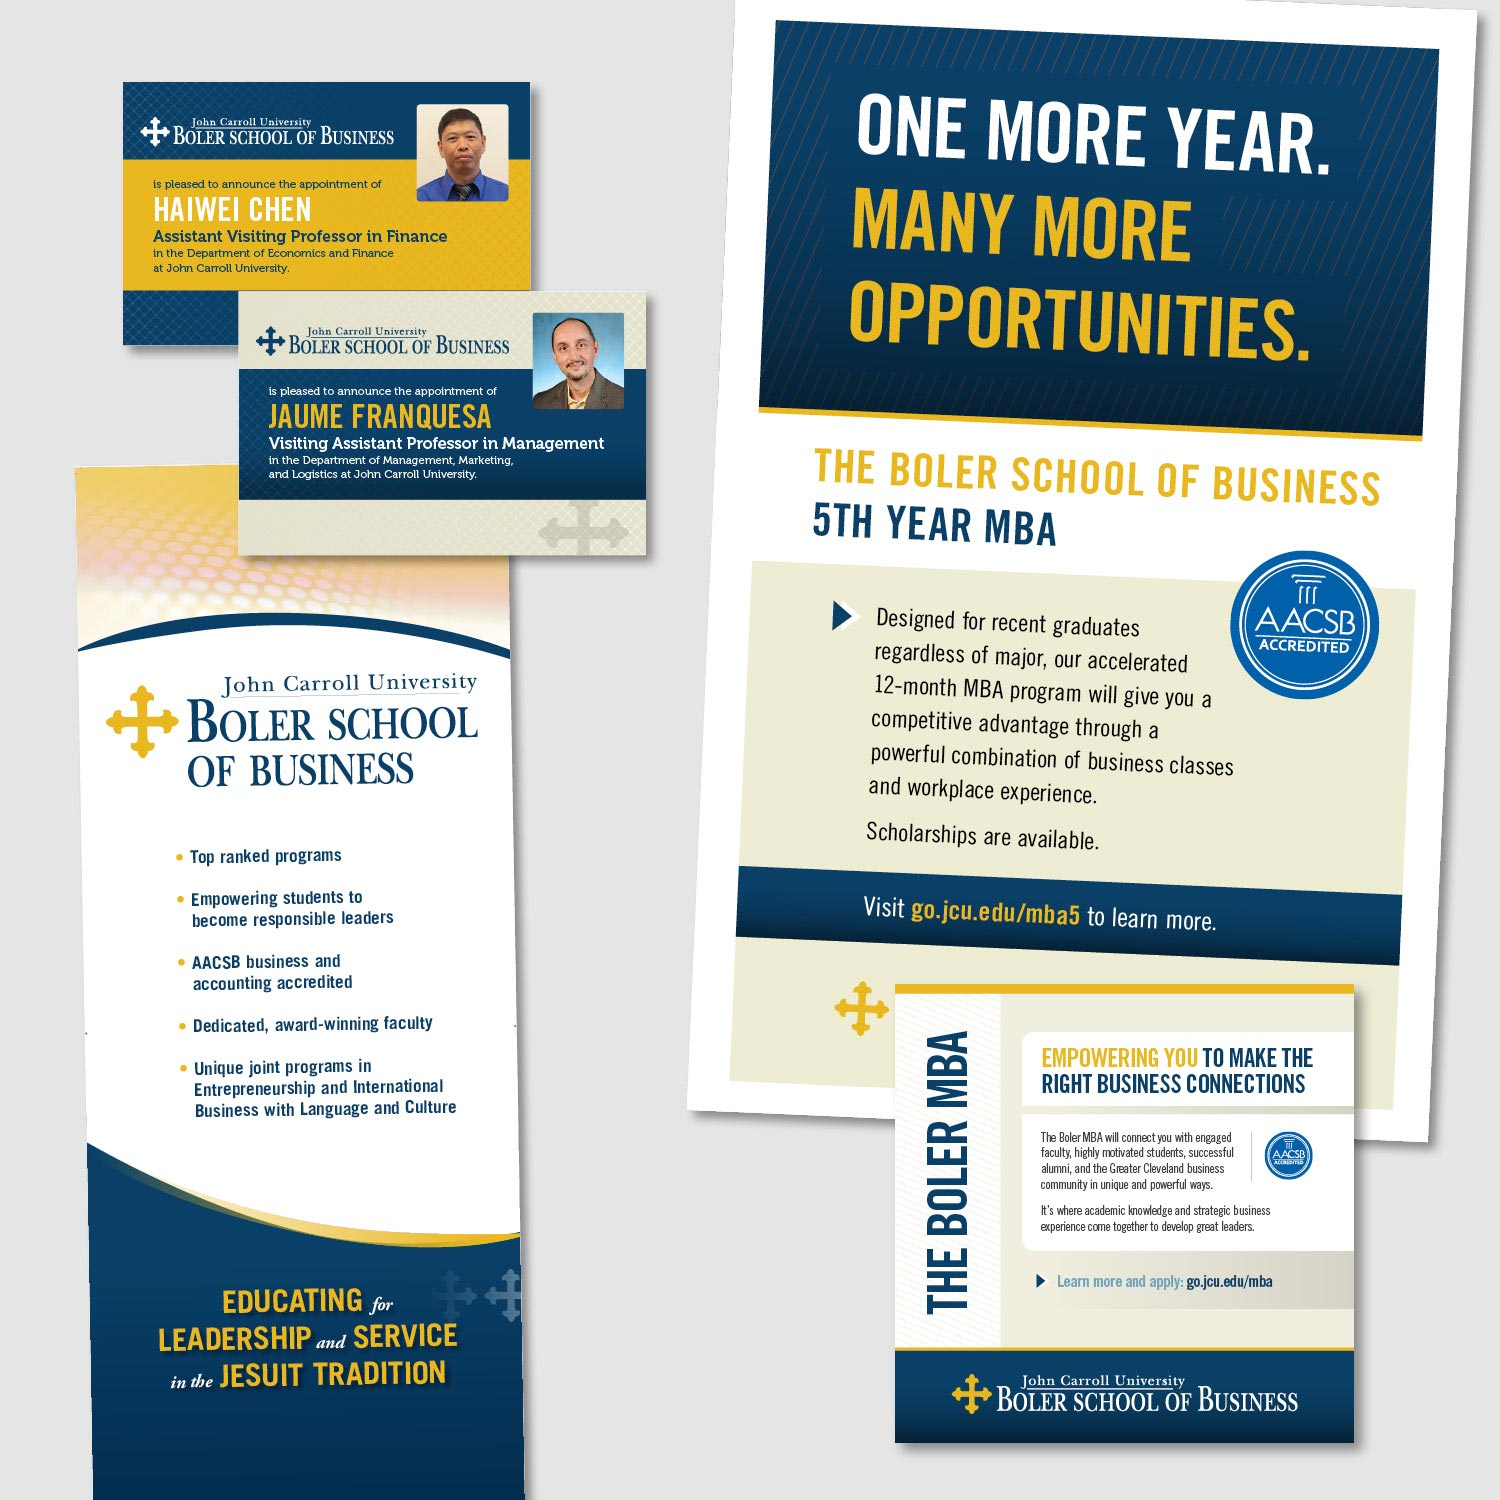 Working within brand guidelines and colors, I designed multiple layouts for the Boler School of Business at John Carroll University. Pieces include: ads, posters, banner stands, postcards, and more.